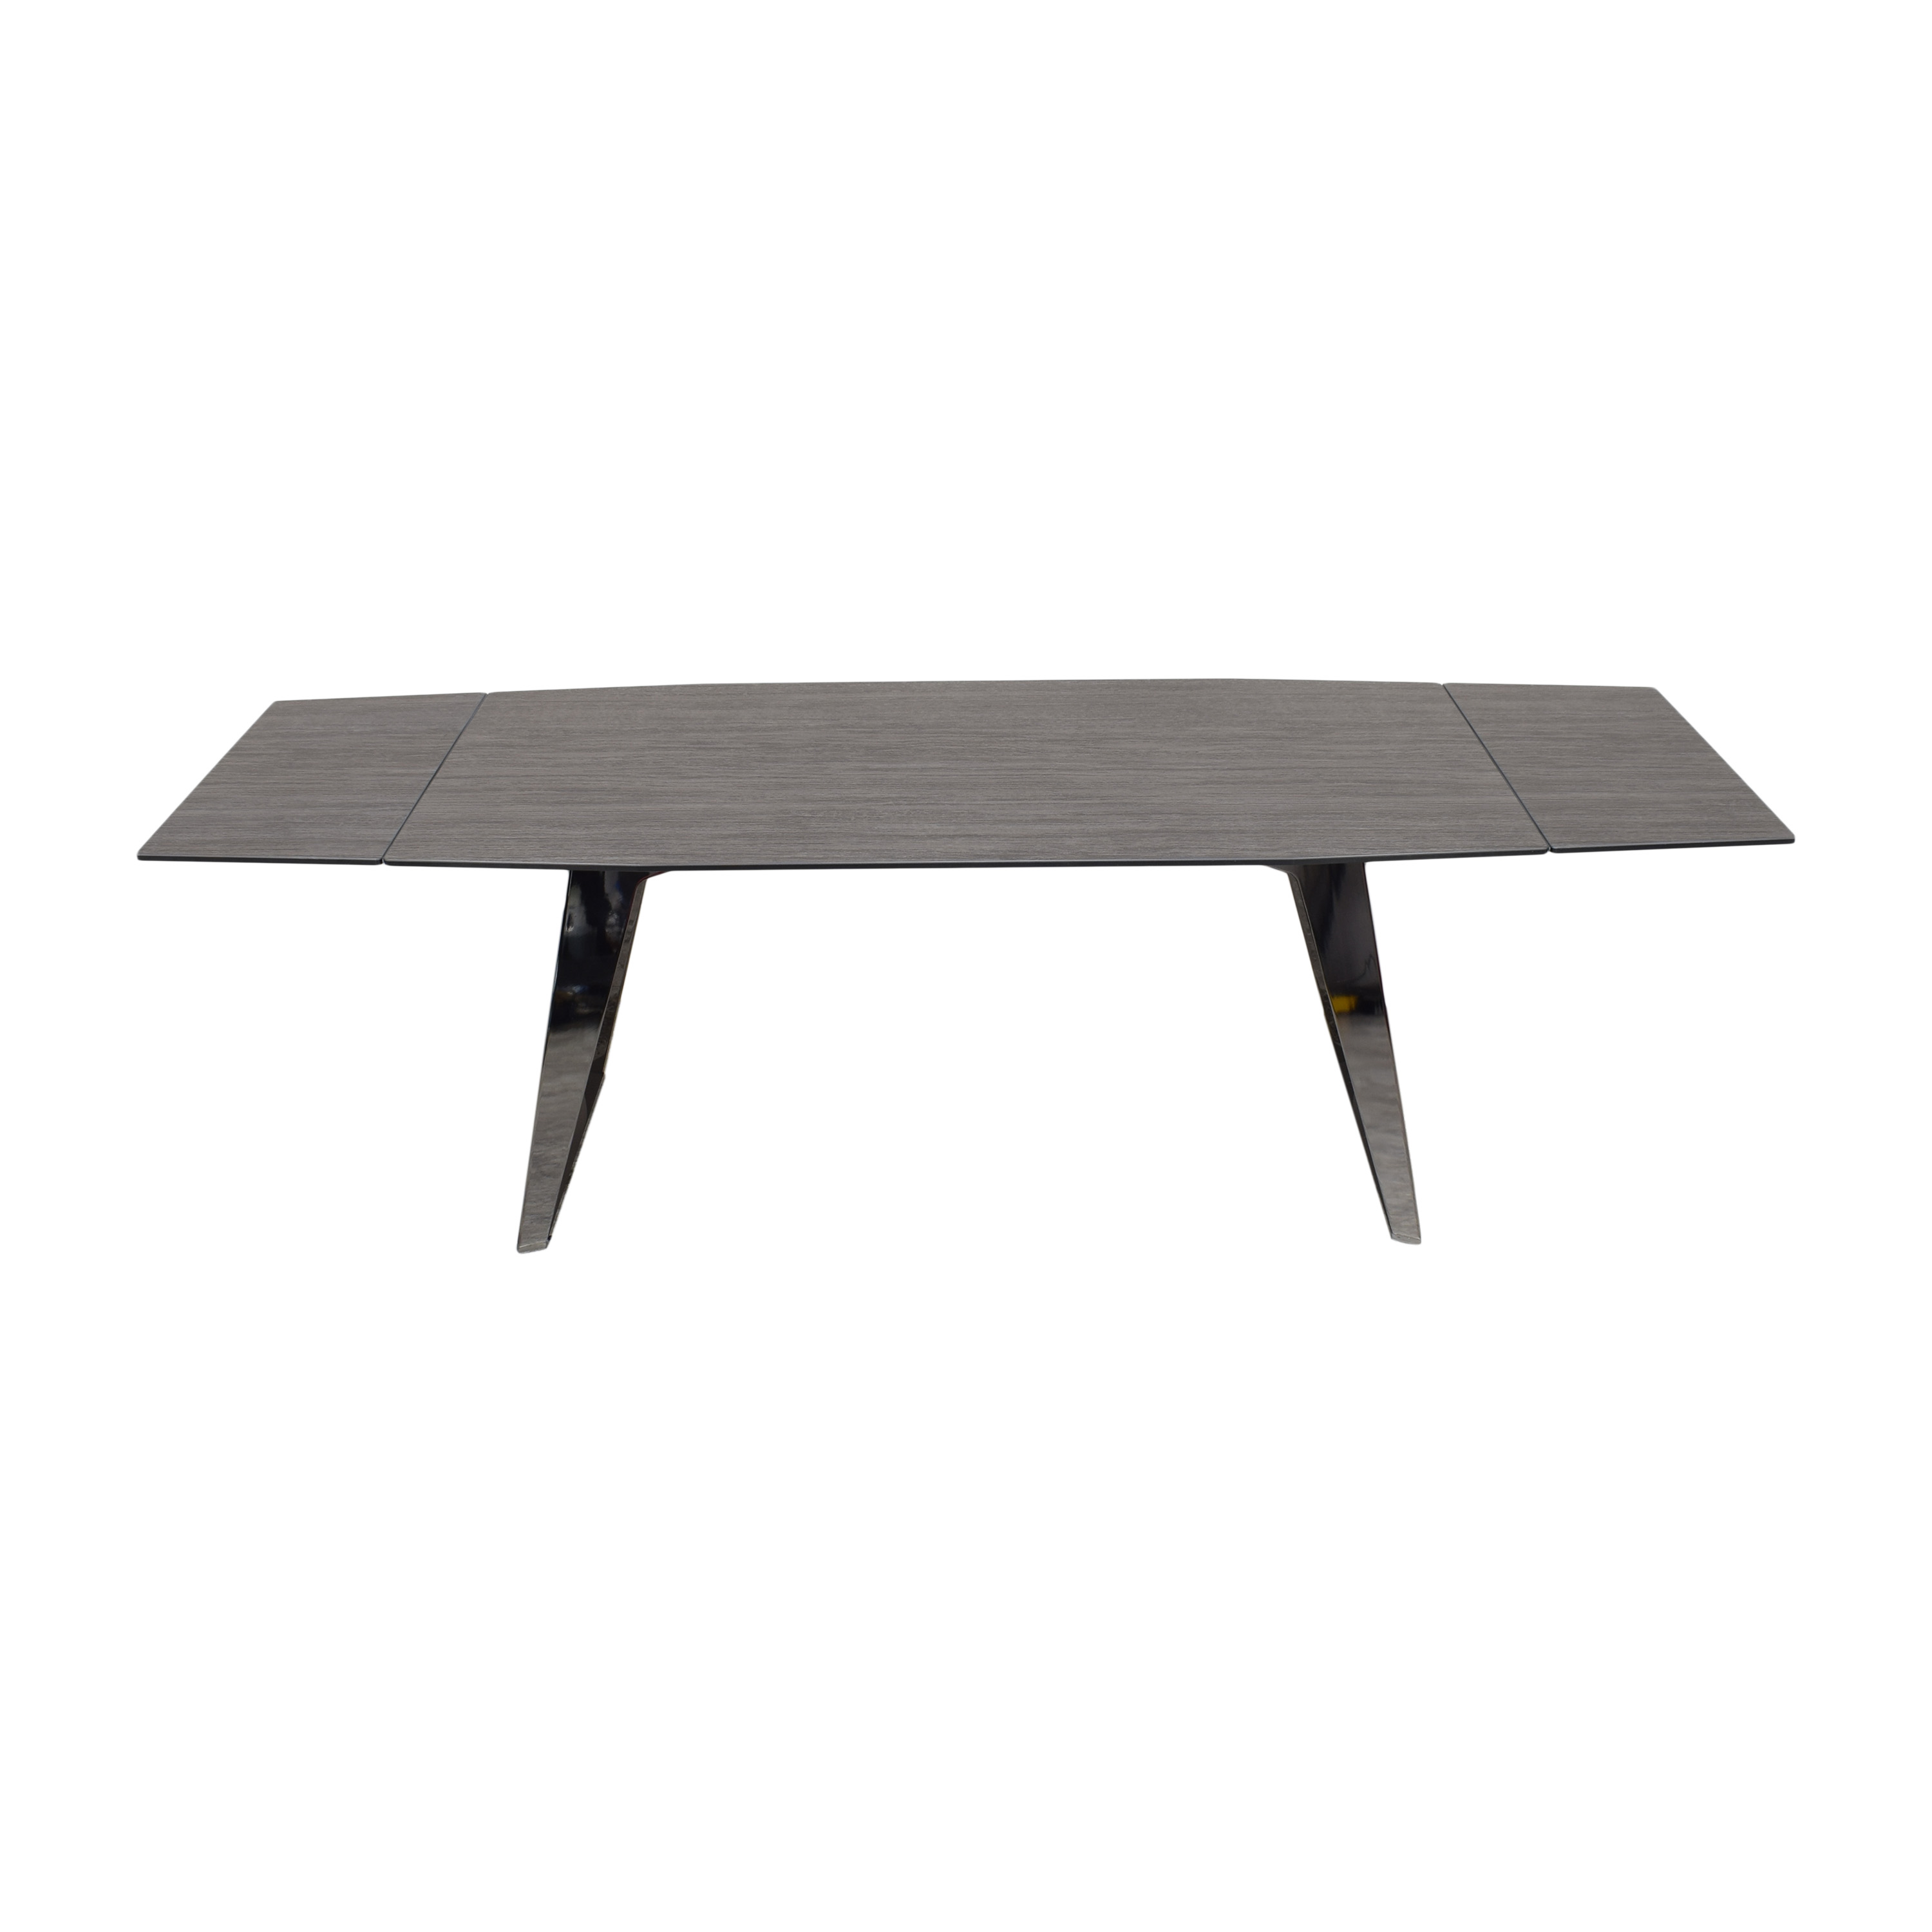 Roche Bobois Roche Bobois Echoes Extension Dining Table nyc